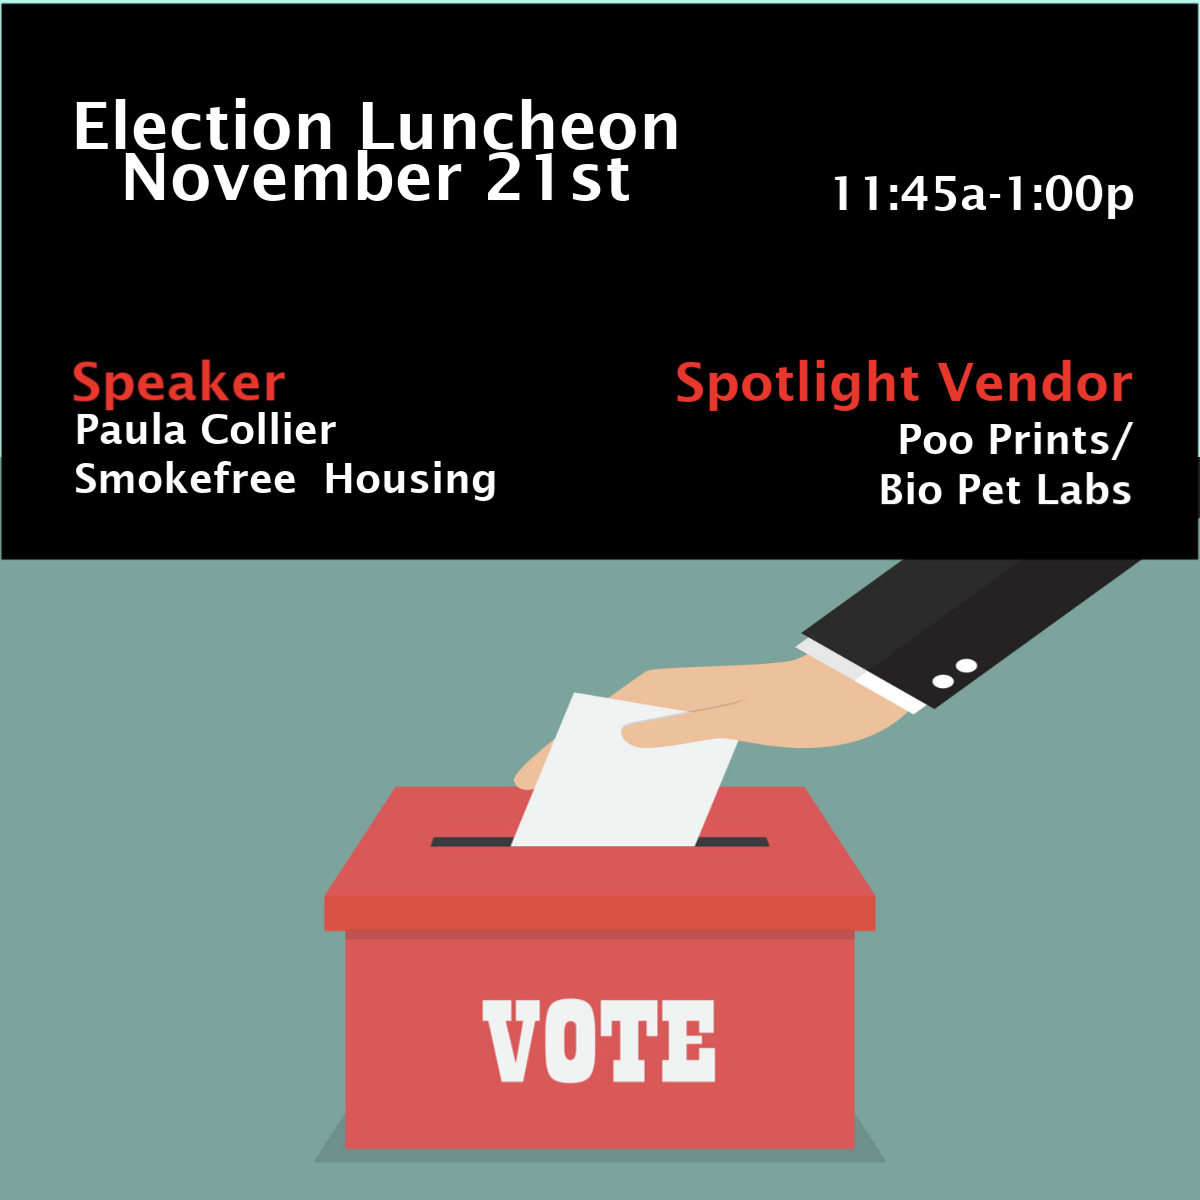 November Election Luncheon @ The Chattanooga Theatre Centre | Chattanooga | Tennessee | United States